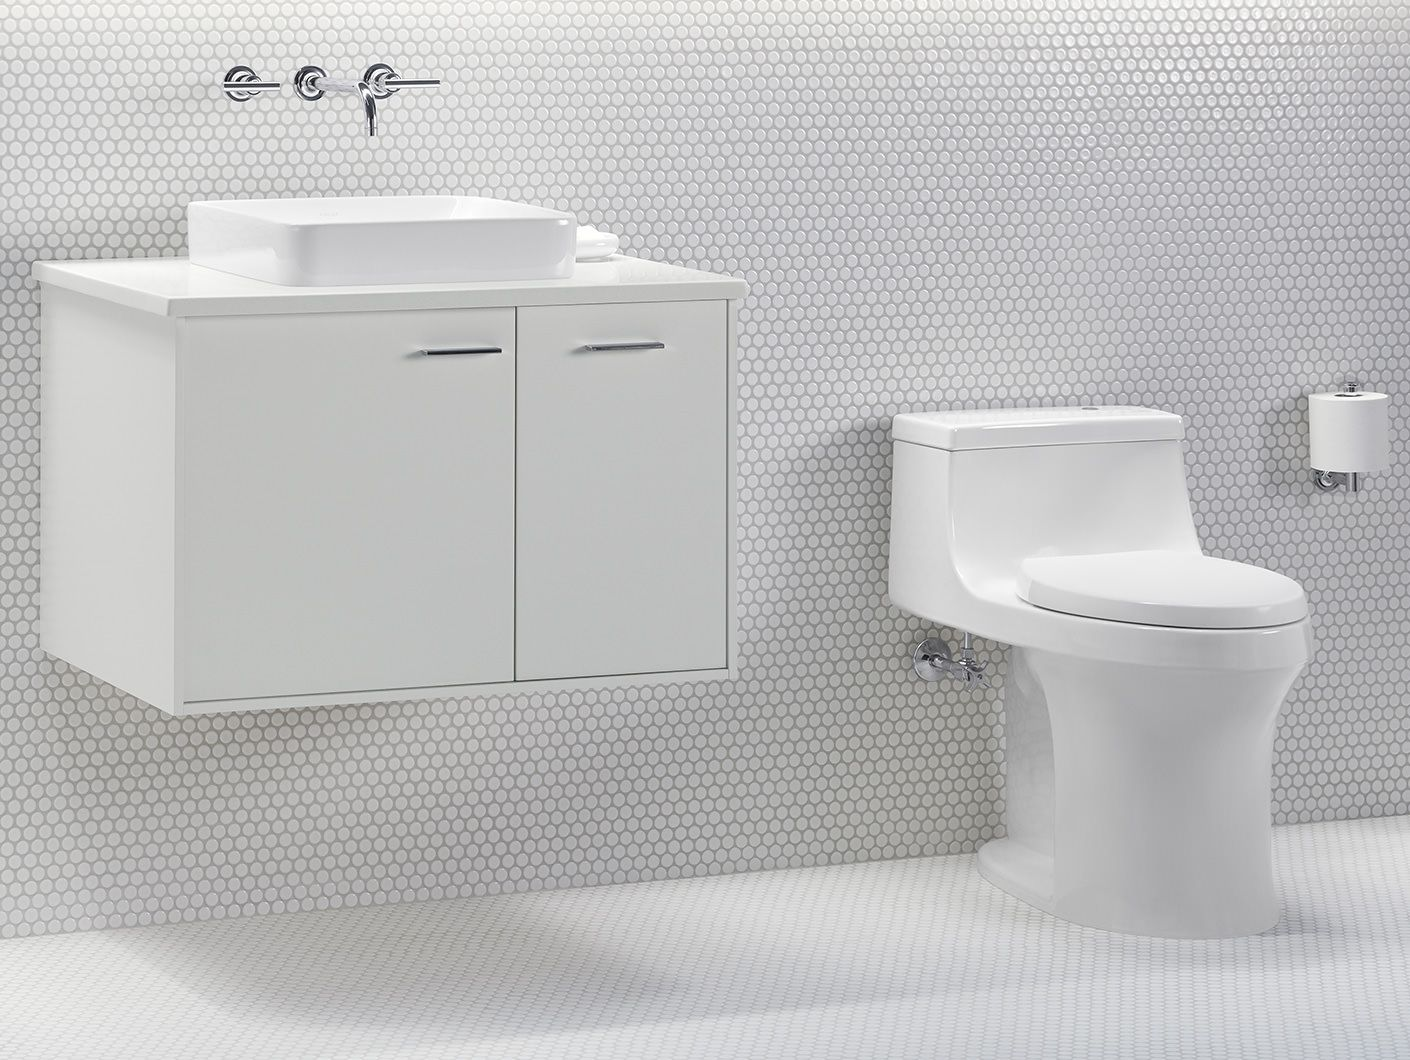 Kohler Touchless Toilets And Flush Kit The No Touch For Your Home Bathroom Bathroomremodeling Luxury Decor Homedecor Interiordesign